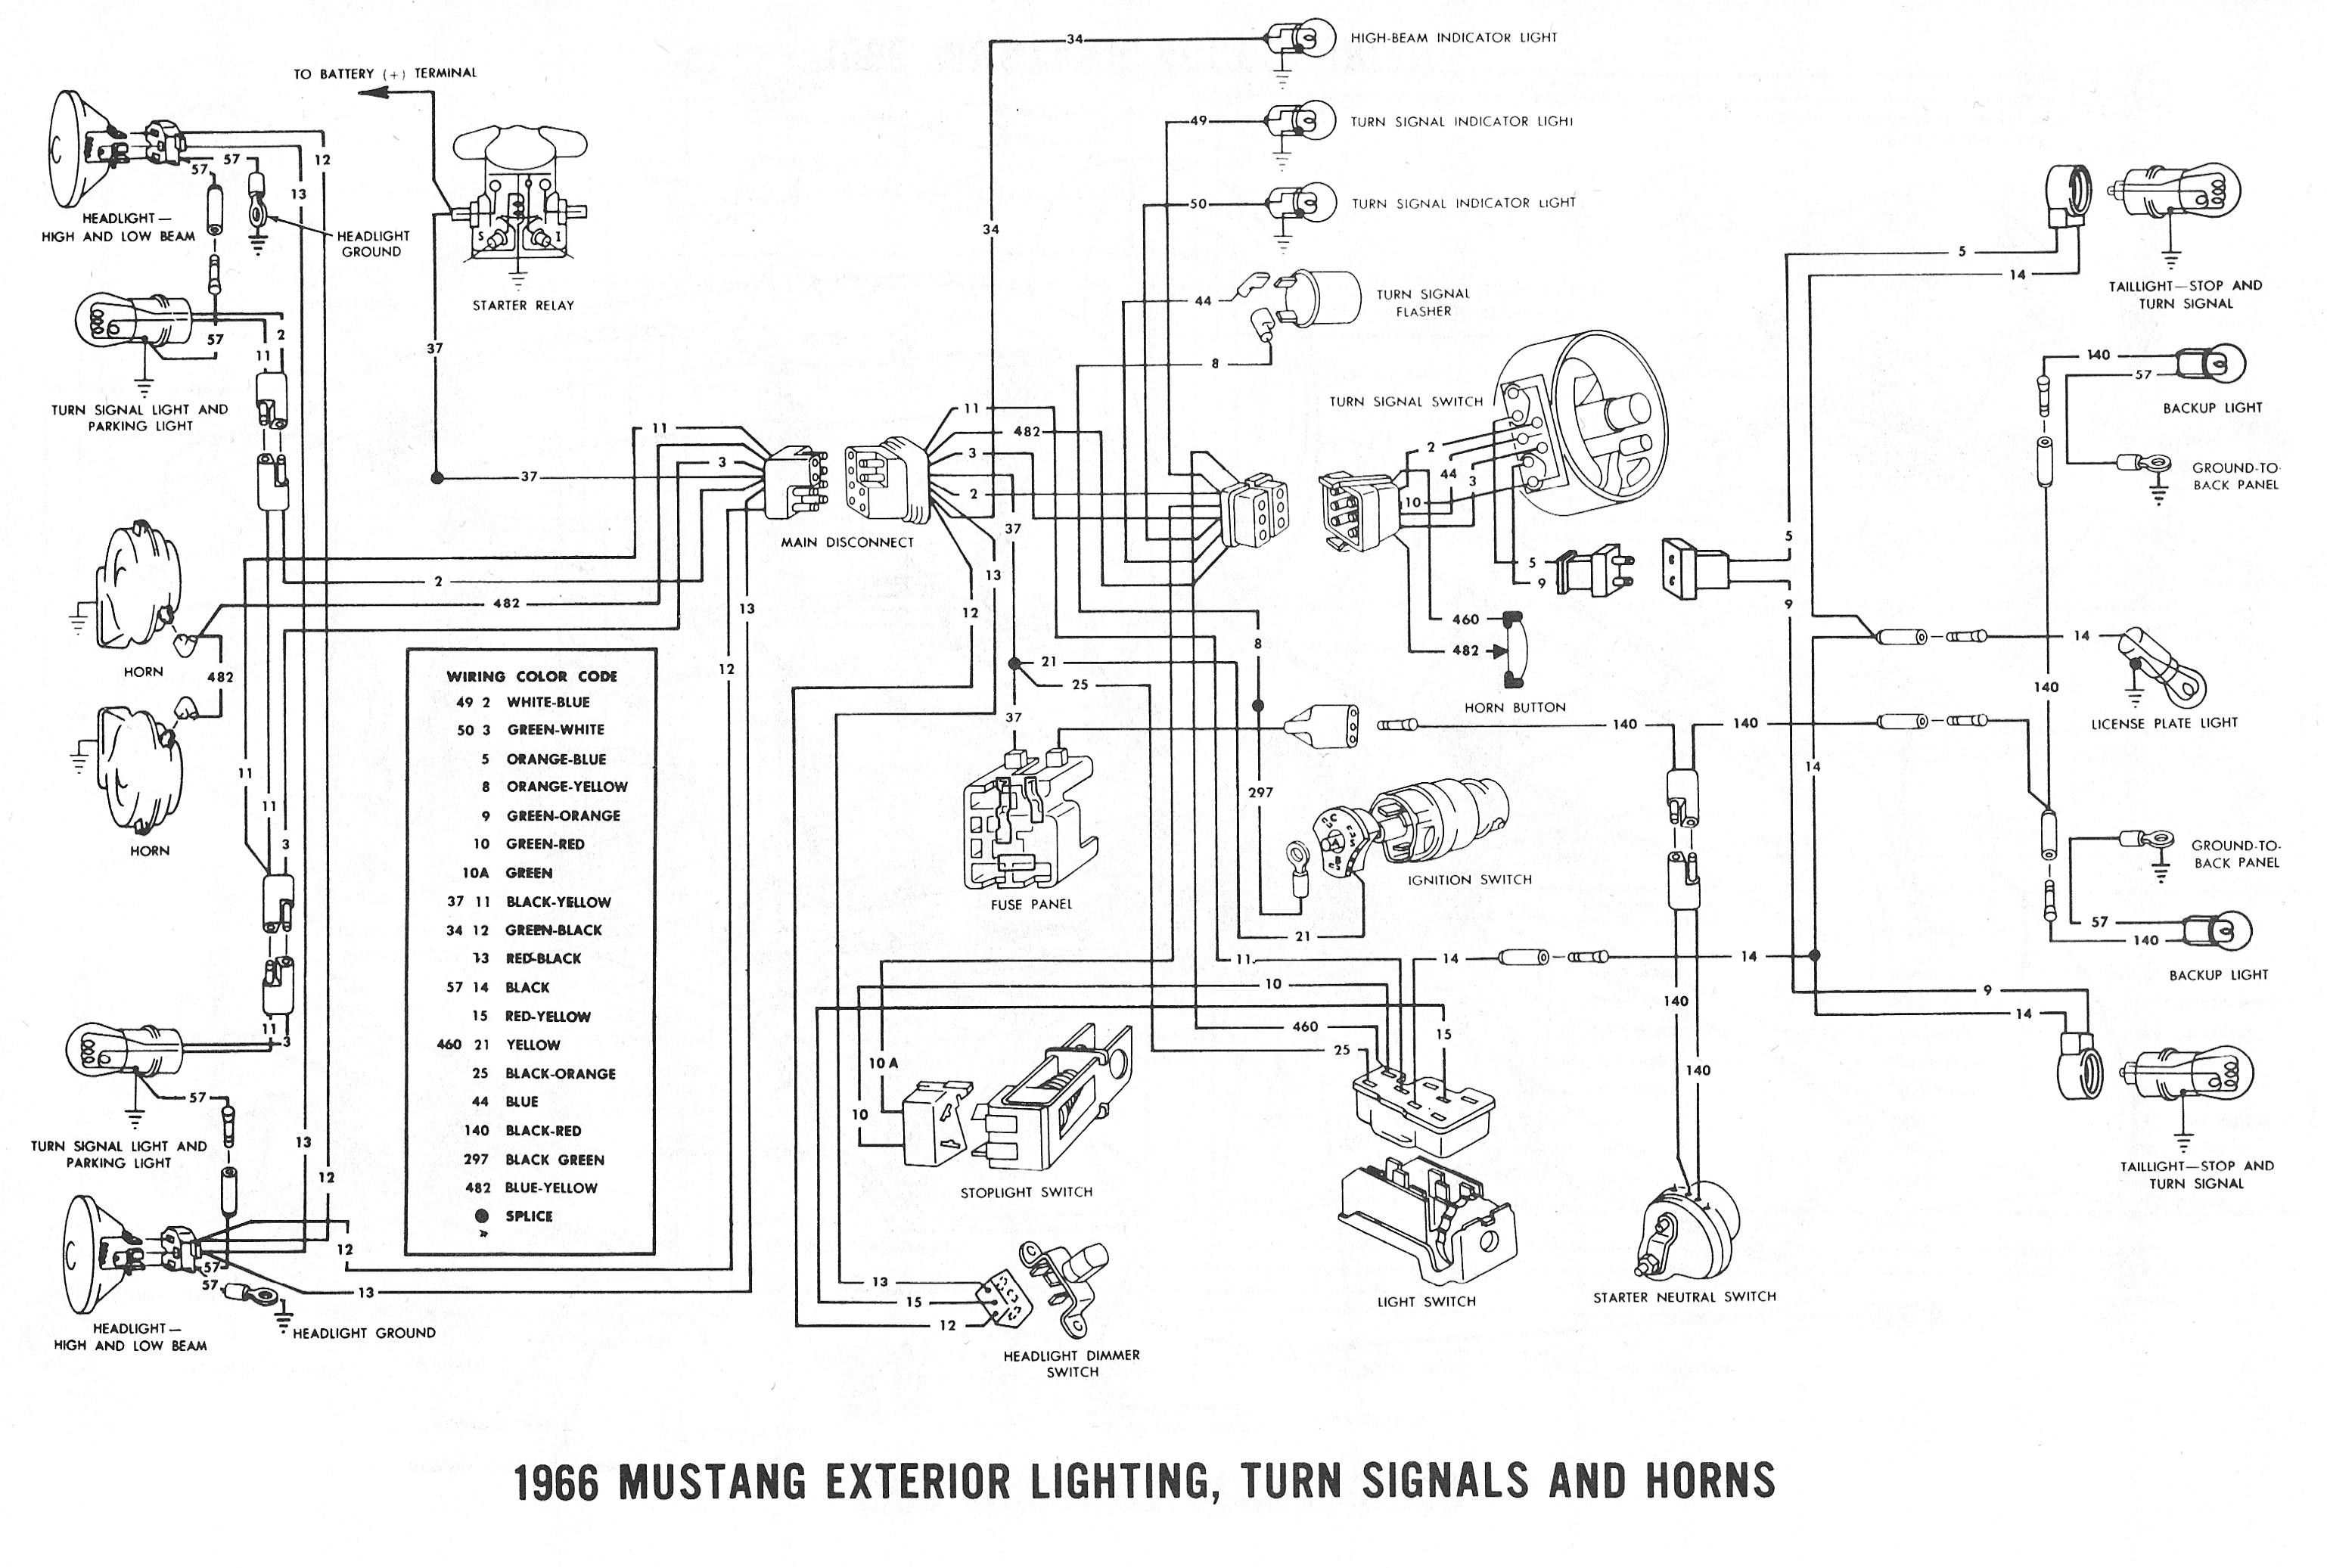 1965 Mustang Turn Signal Wiring Diagram Schematics 65 Engine Switch 1966 Jeep Opinions About 1980 Ford